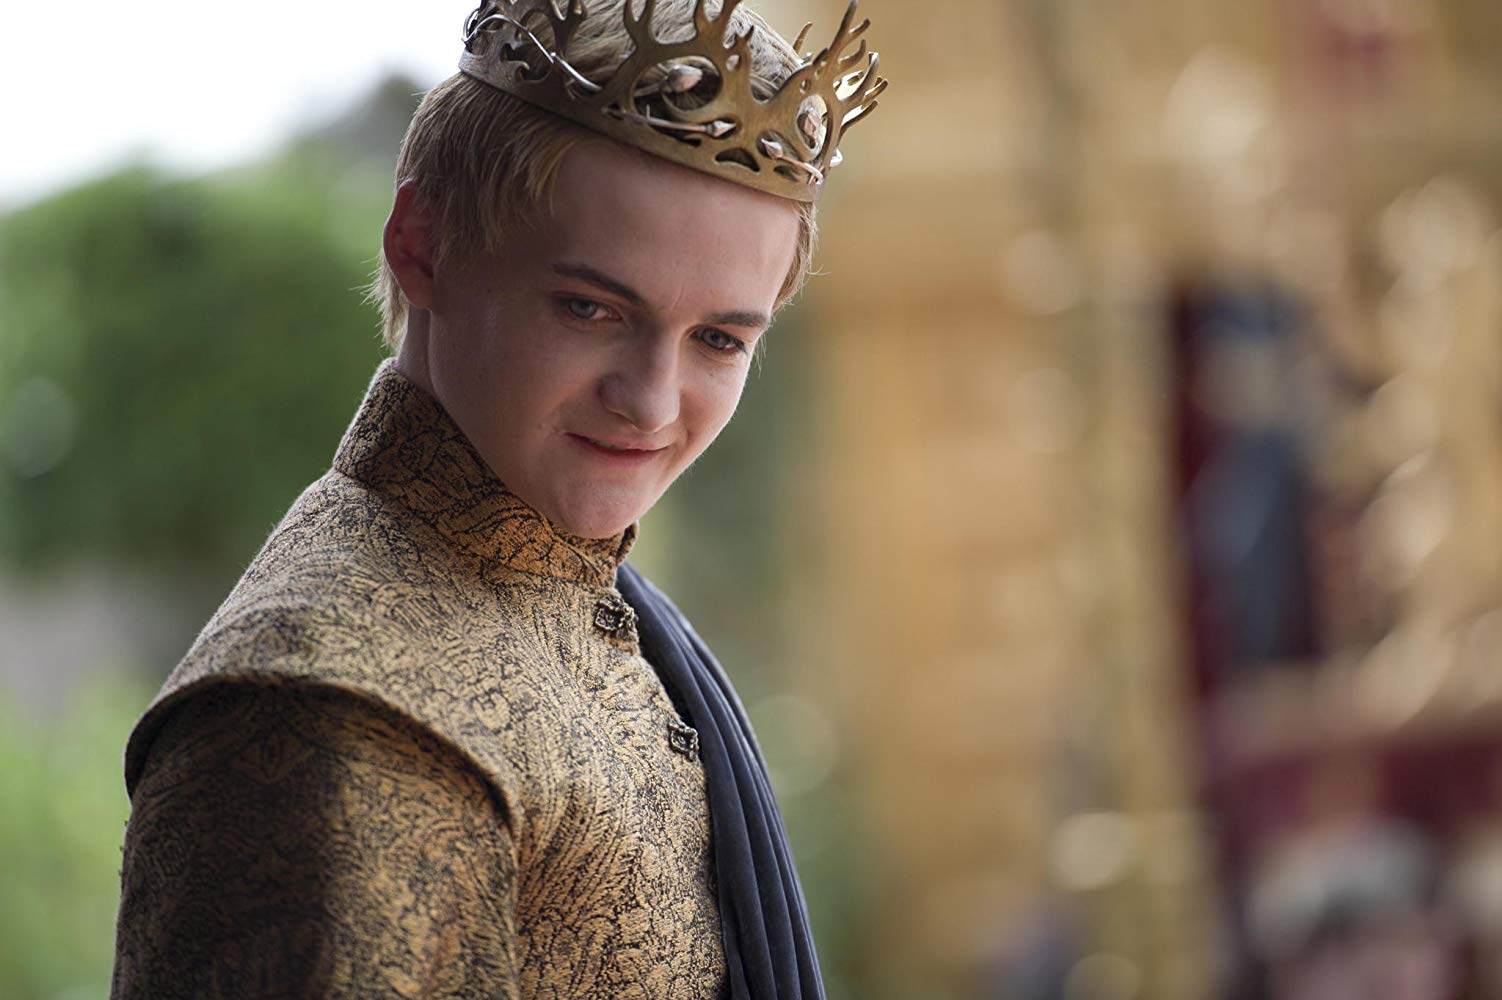 Jack Gleeson as Joffrey Baratheon in 'Game of Thrones'. (Source: IMDB)